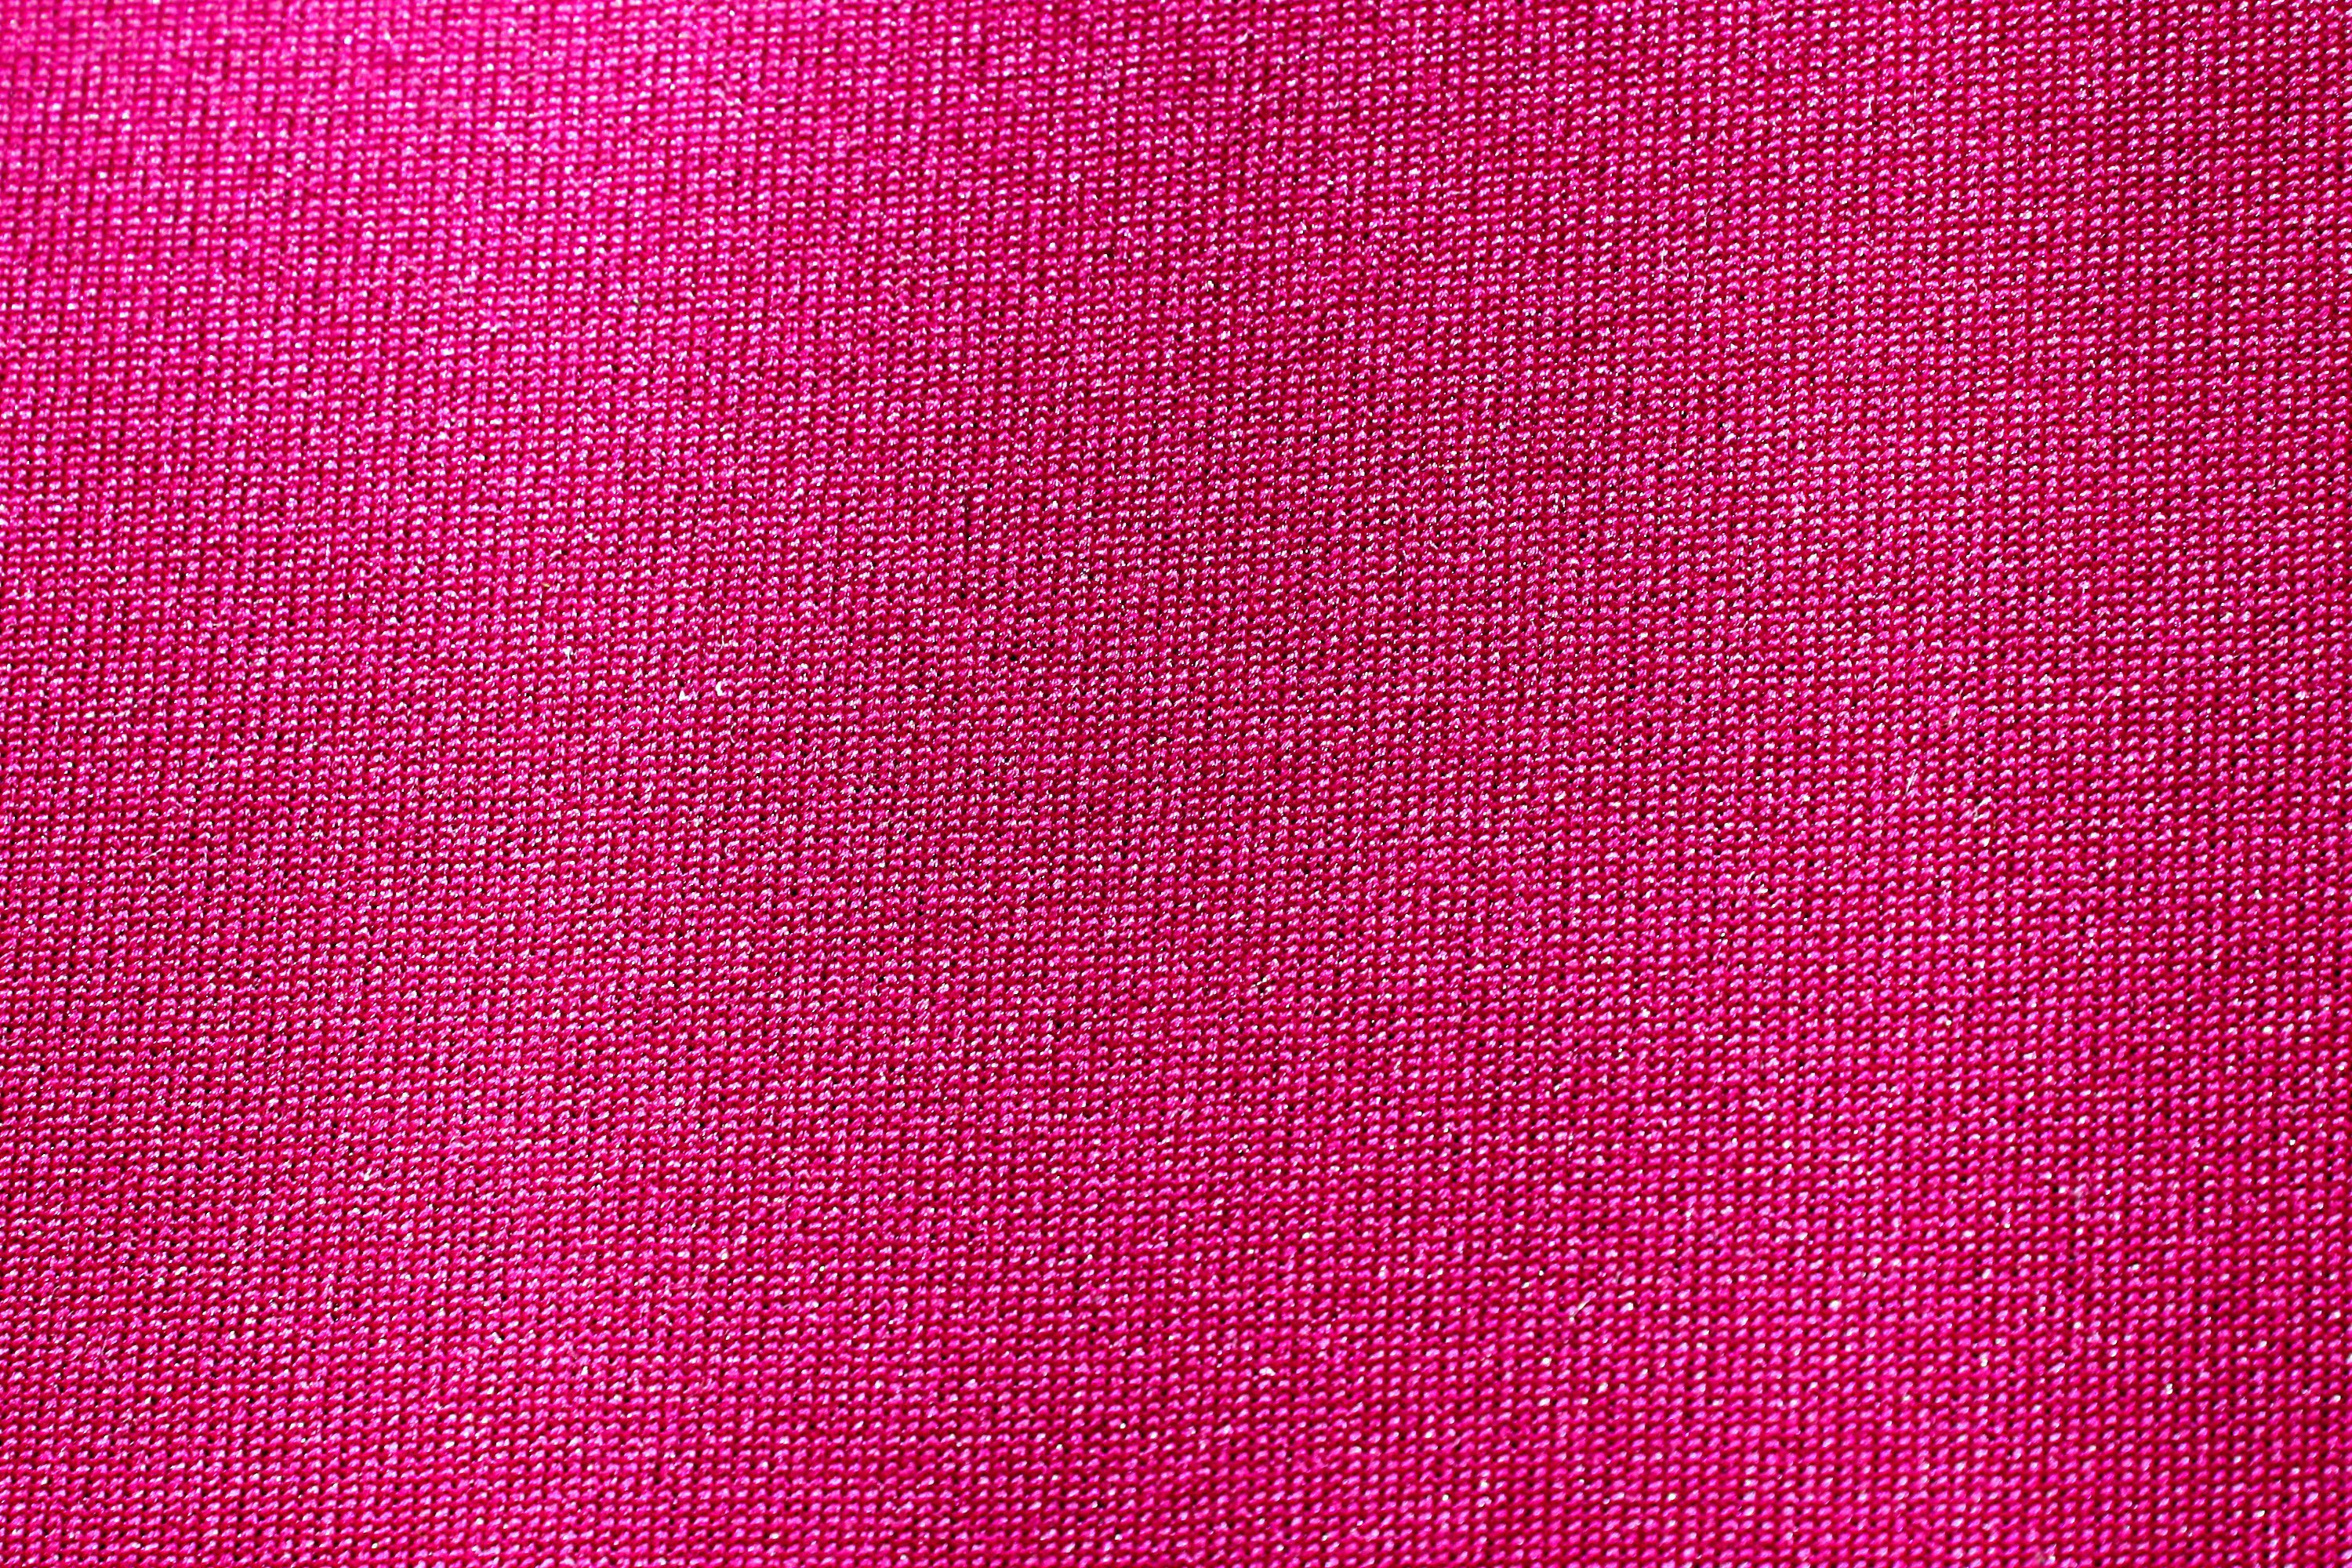 Pink fabric texture free high resolution photo dimensions 3888 - Hot Pink Nylon Fabric Closeup Texture Free High Resolution Photo